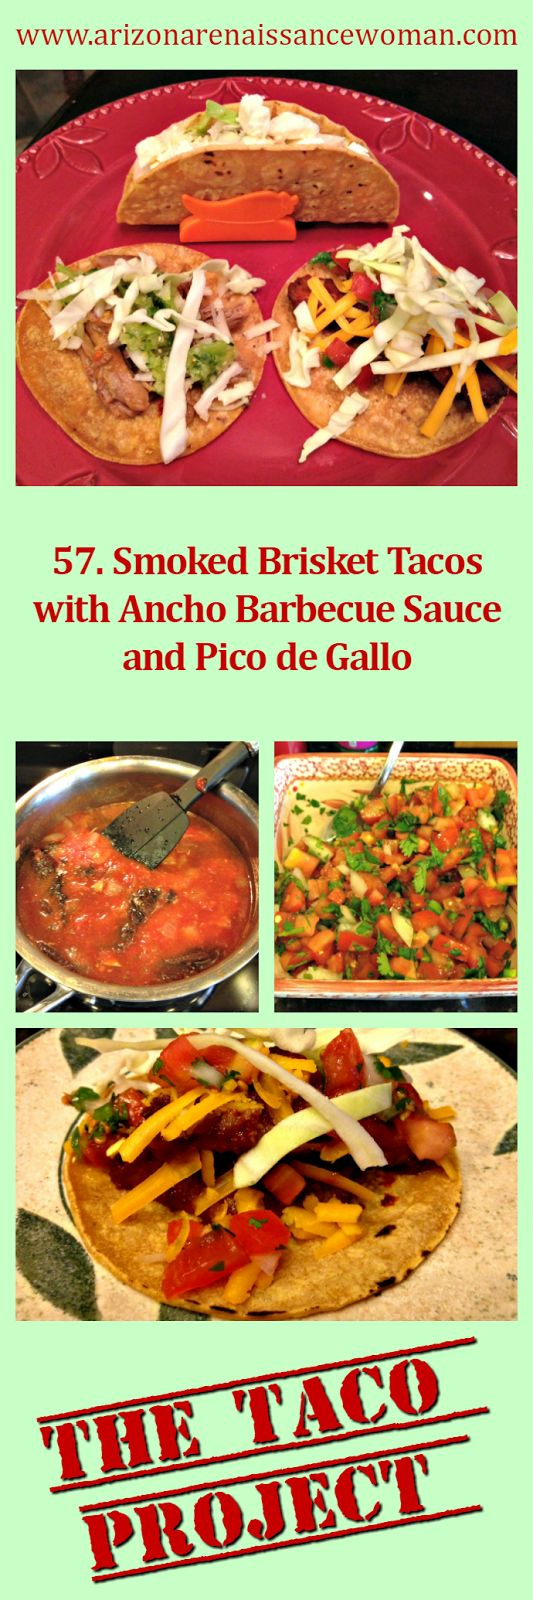 http://www.arizonarenaissancewoman.com/2016/03/57-smoked-brisket-tacos-with-ancho.html Try these delicious smoked brisket tacos - the meat is smoked in a stovetop smoker, which makes it an easy task!  We loved these!  :)  Smoked Brisket Tacos with Ancho Barbecue Sauce...